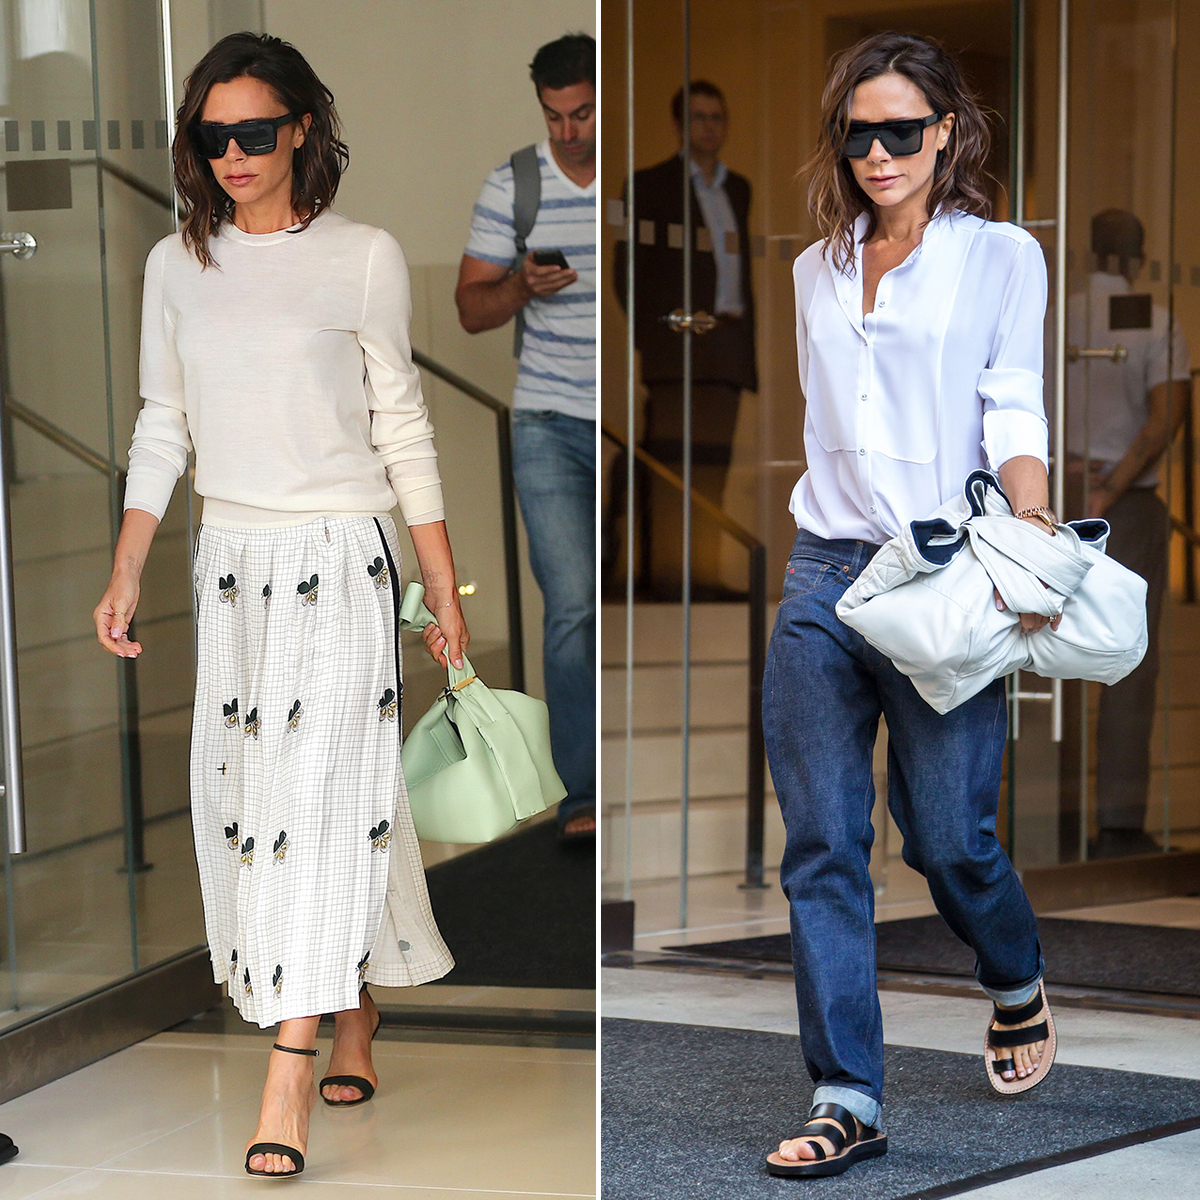 victoria-beckham-posh-style-new-york-fashion-week-2